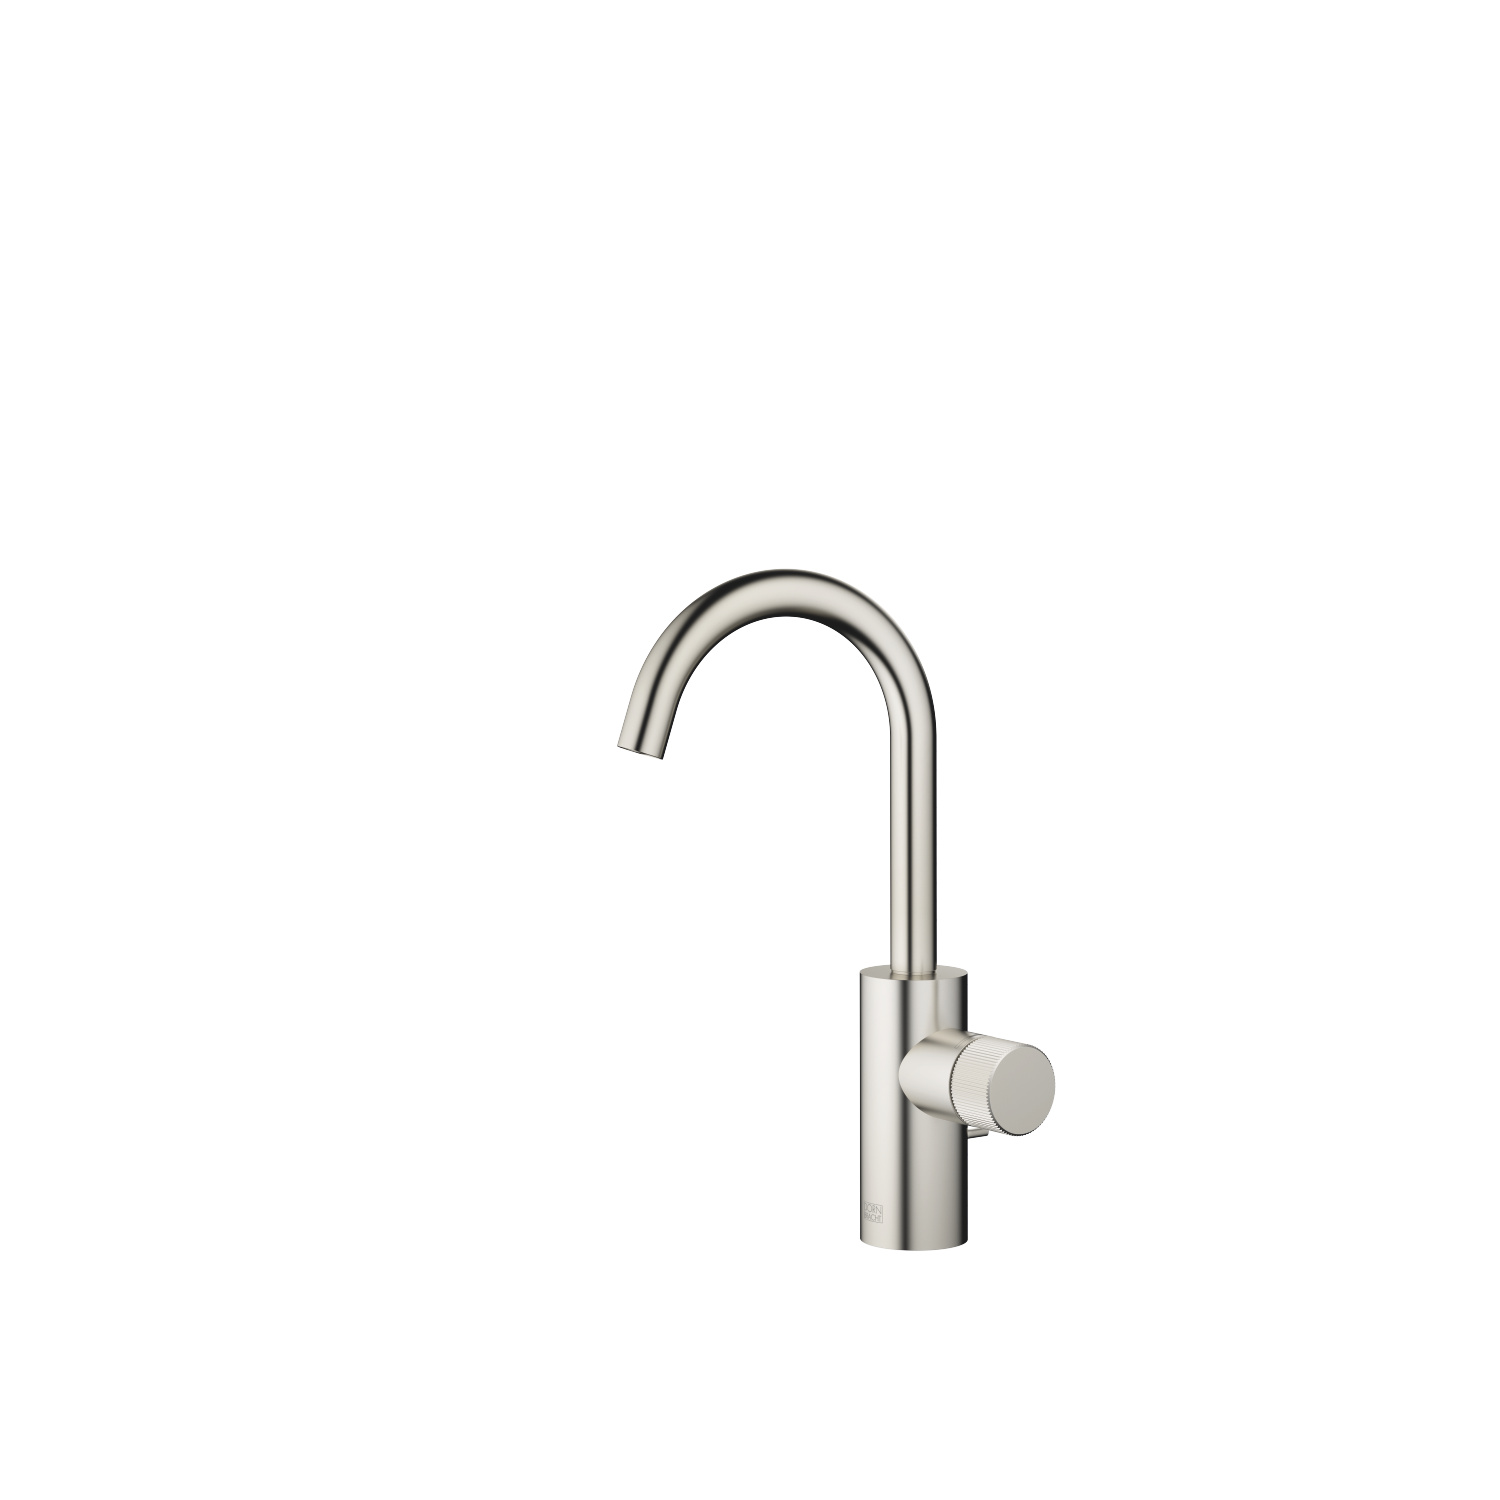 META PURE Single-lever basin mixer with pop-up waste - platinum matt - 33 510 665-06 0010